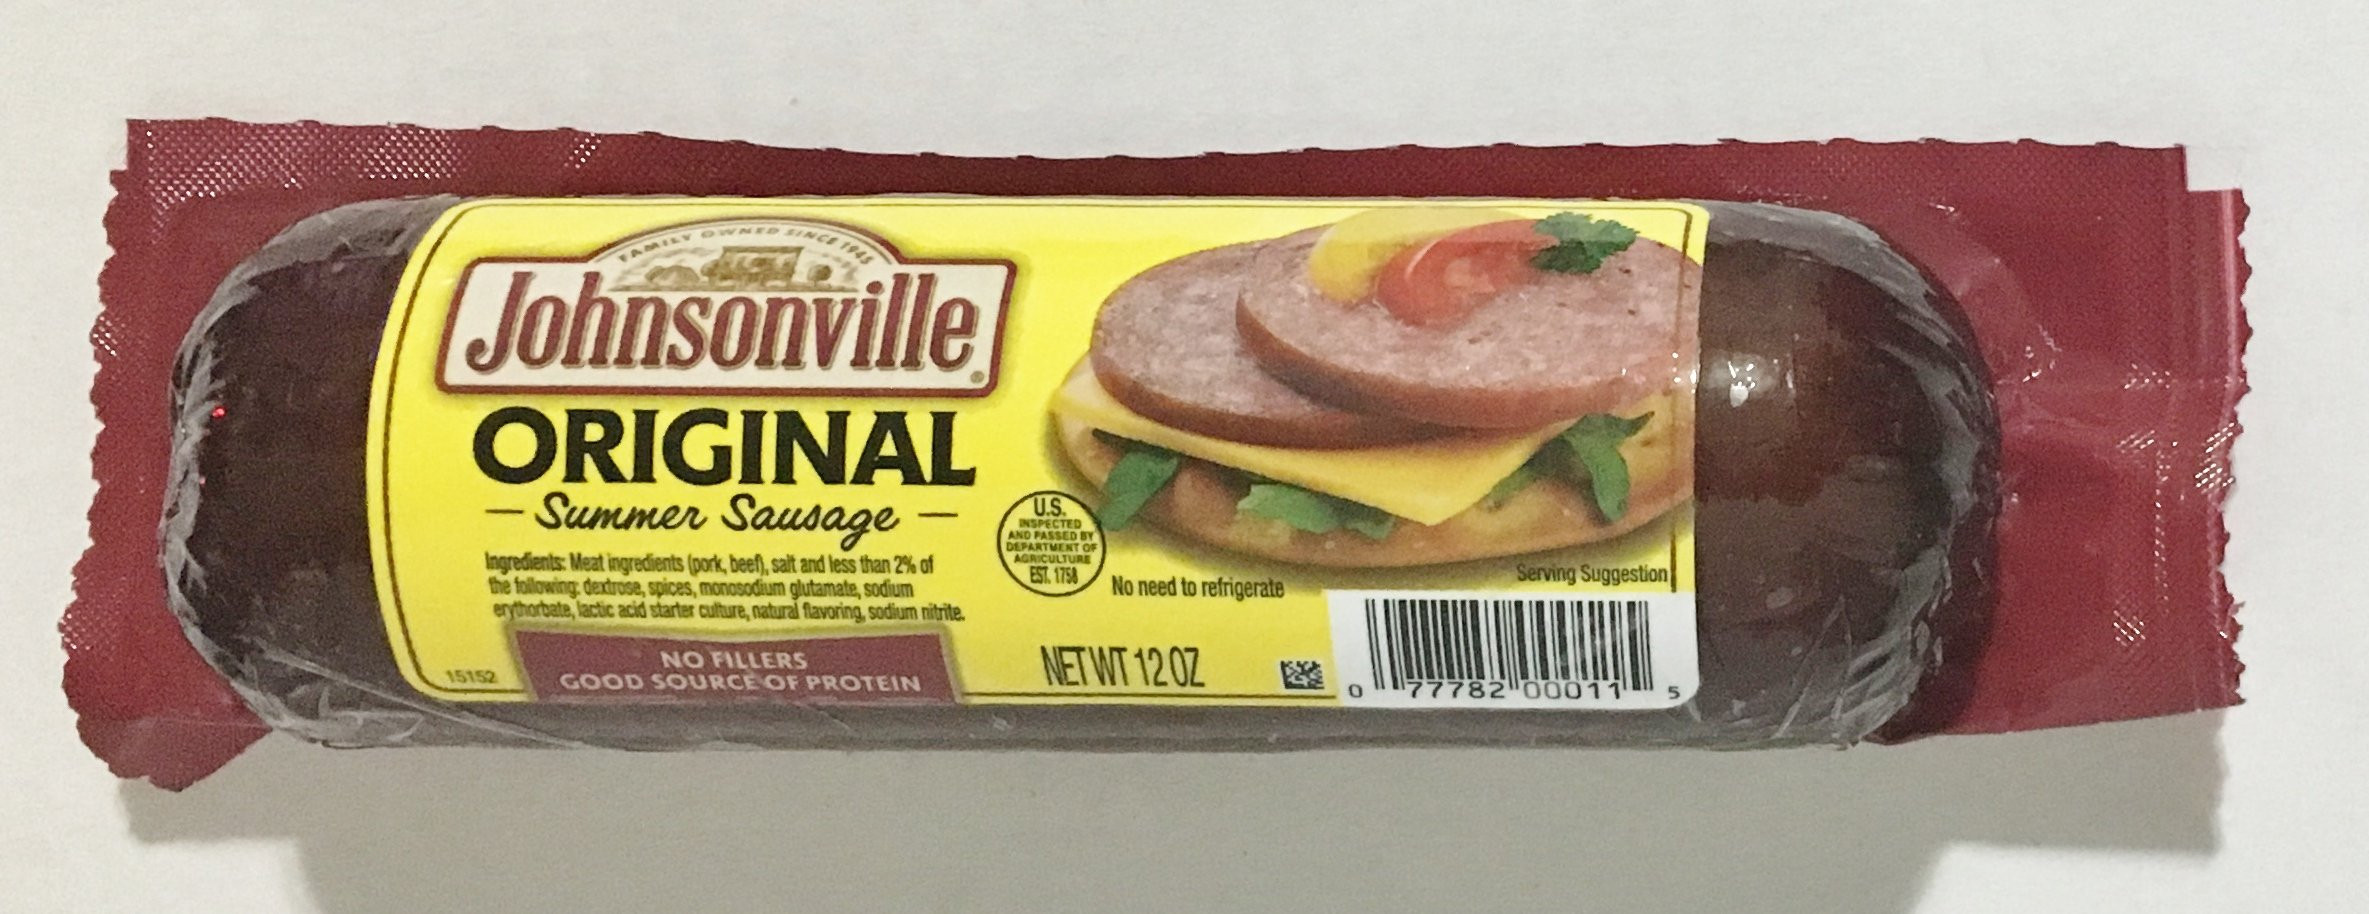 Klements Beef Summer Sausage  12oz Johnsonville Beef Summer Sausage Pack of 2 Amazon